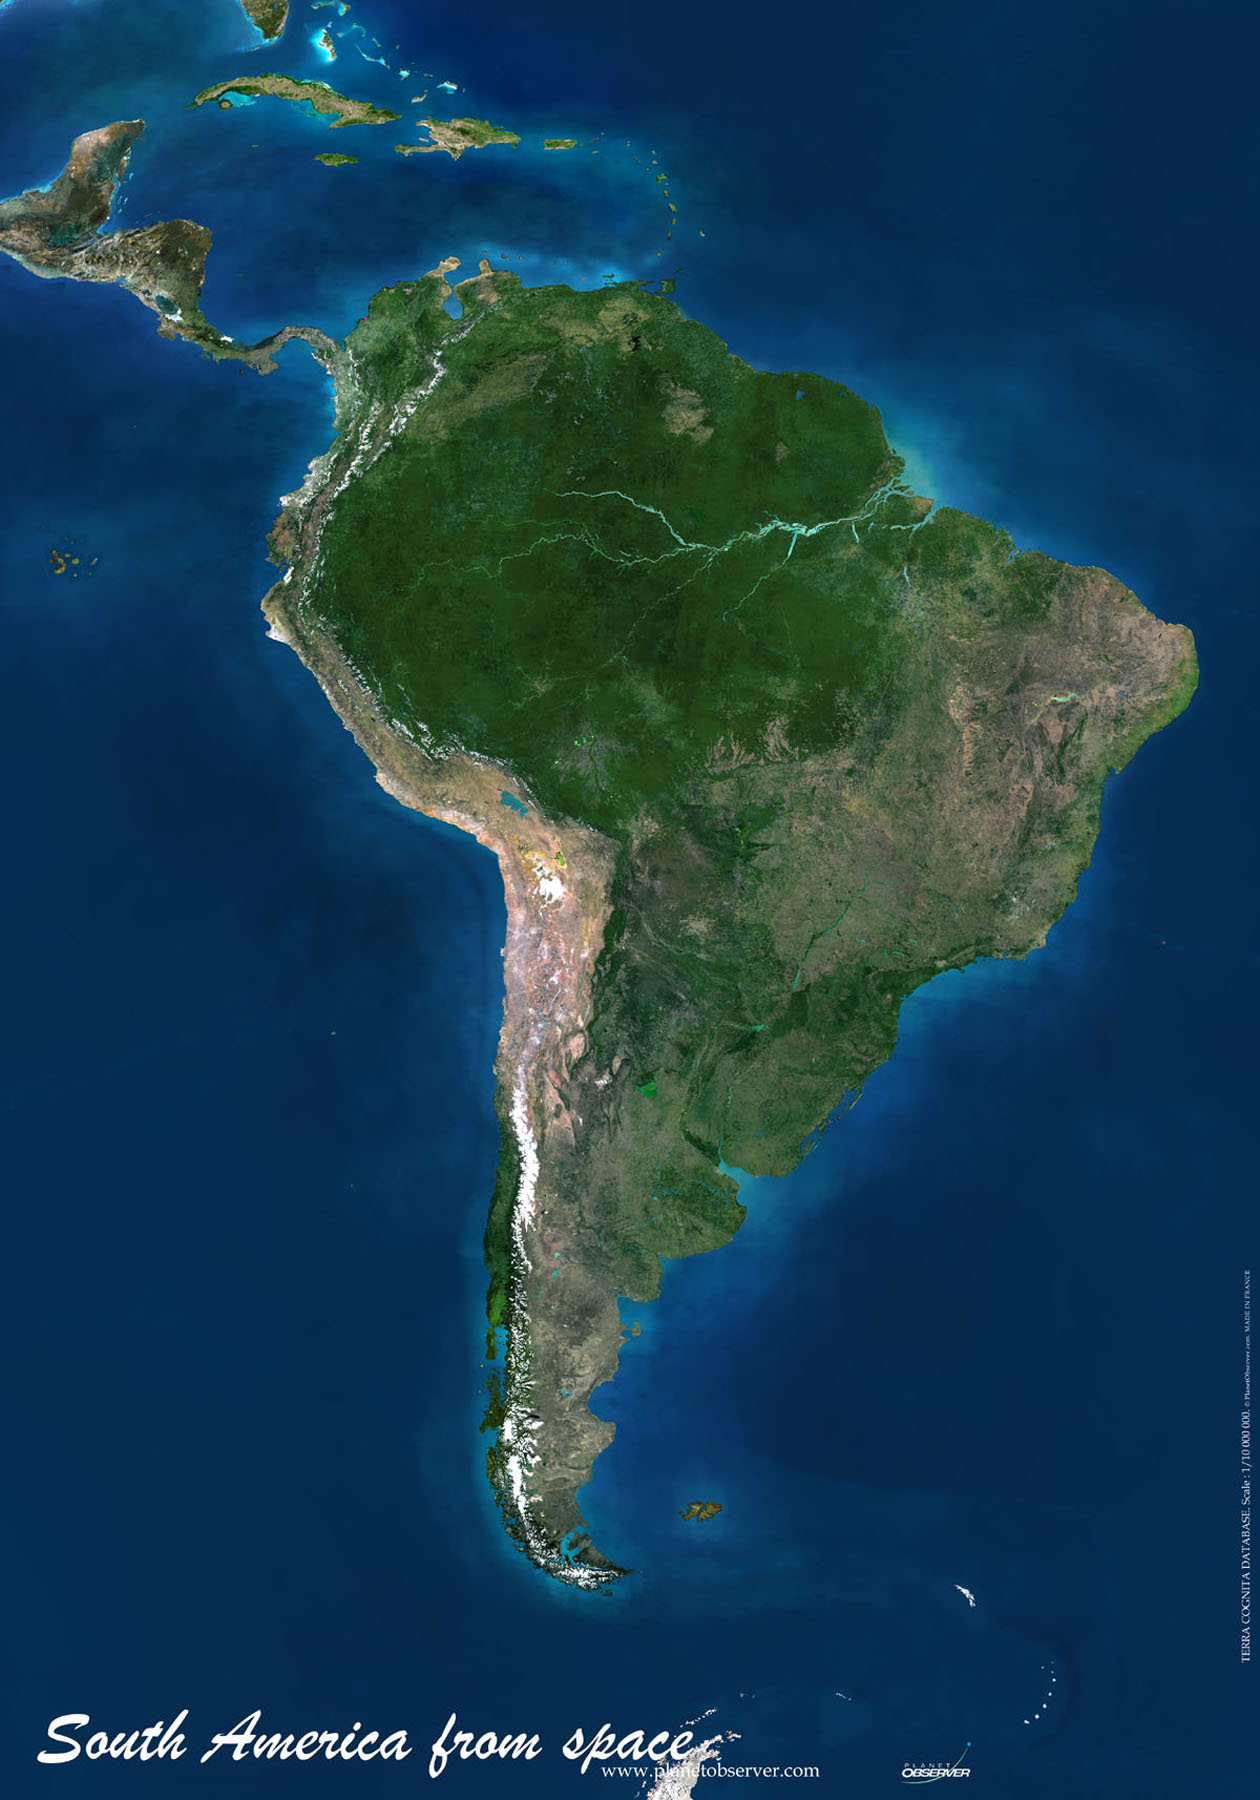 South America Map Or Map Of South America - Hd satellite map